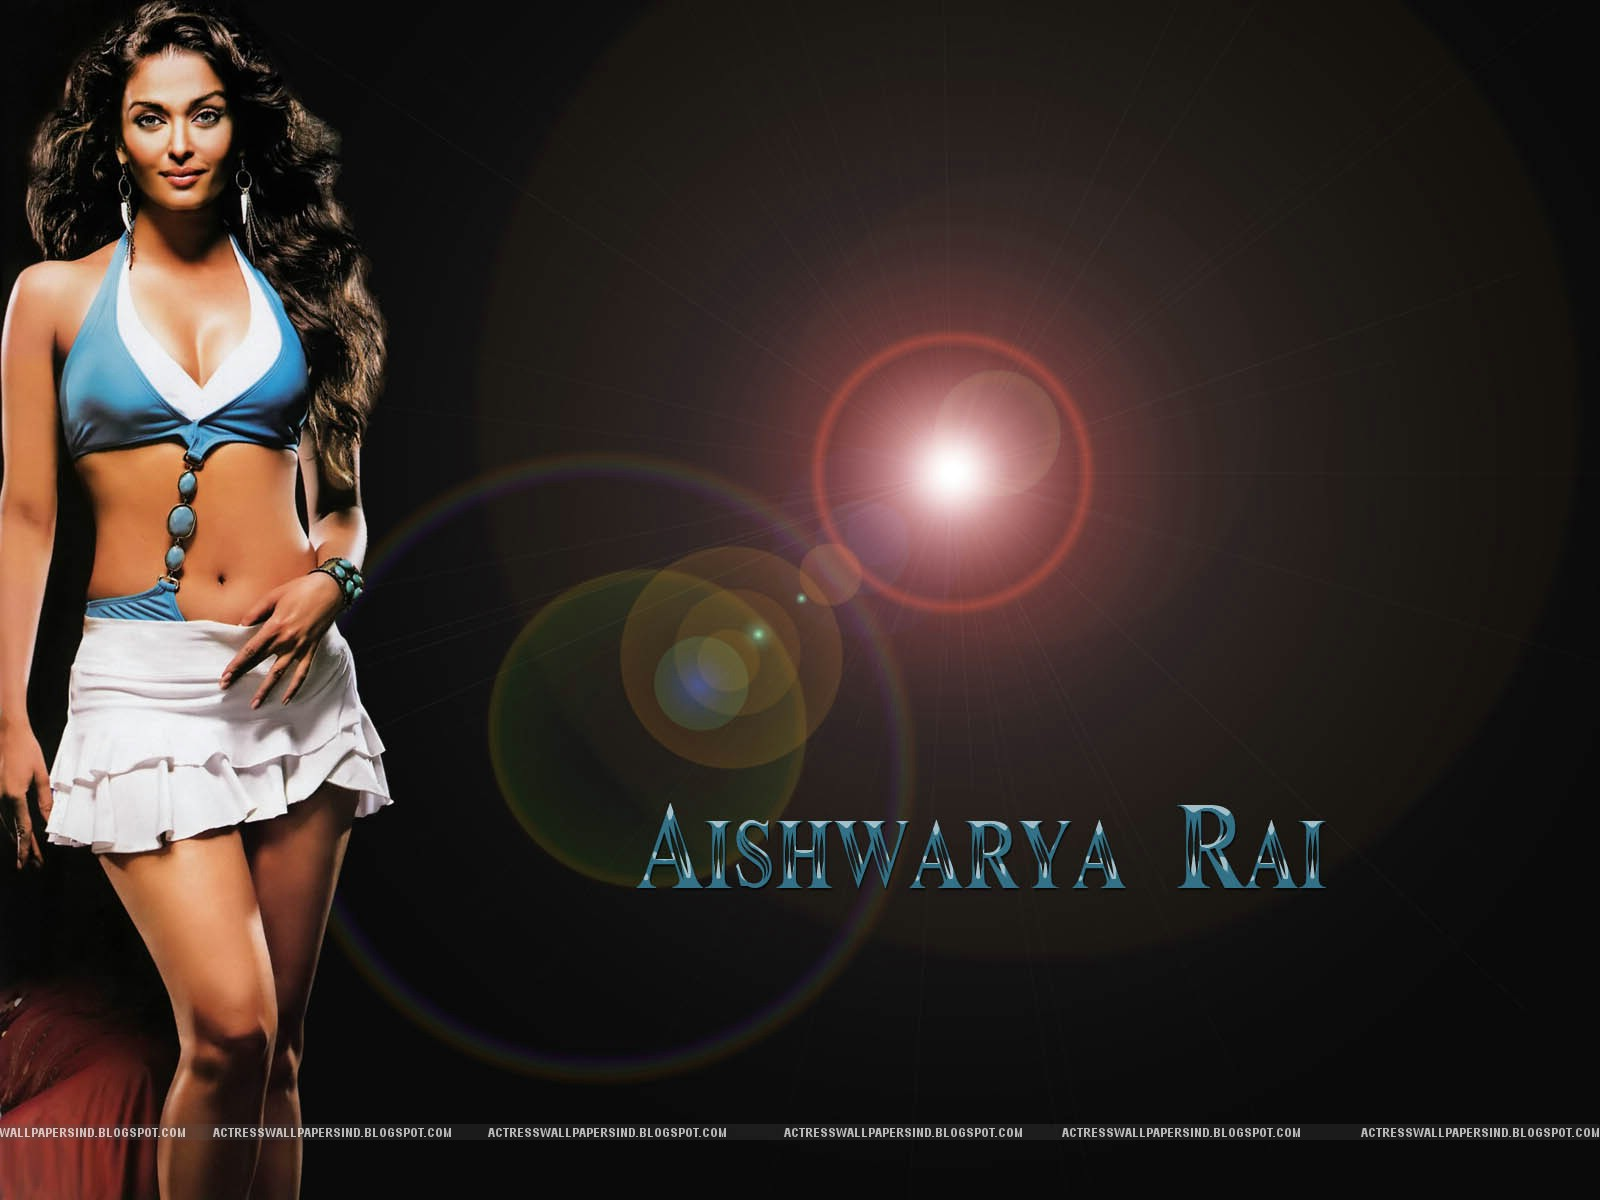 Aishwarya Rai Sexy Photo Shoot Hd Full - A Wind-4177